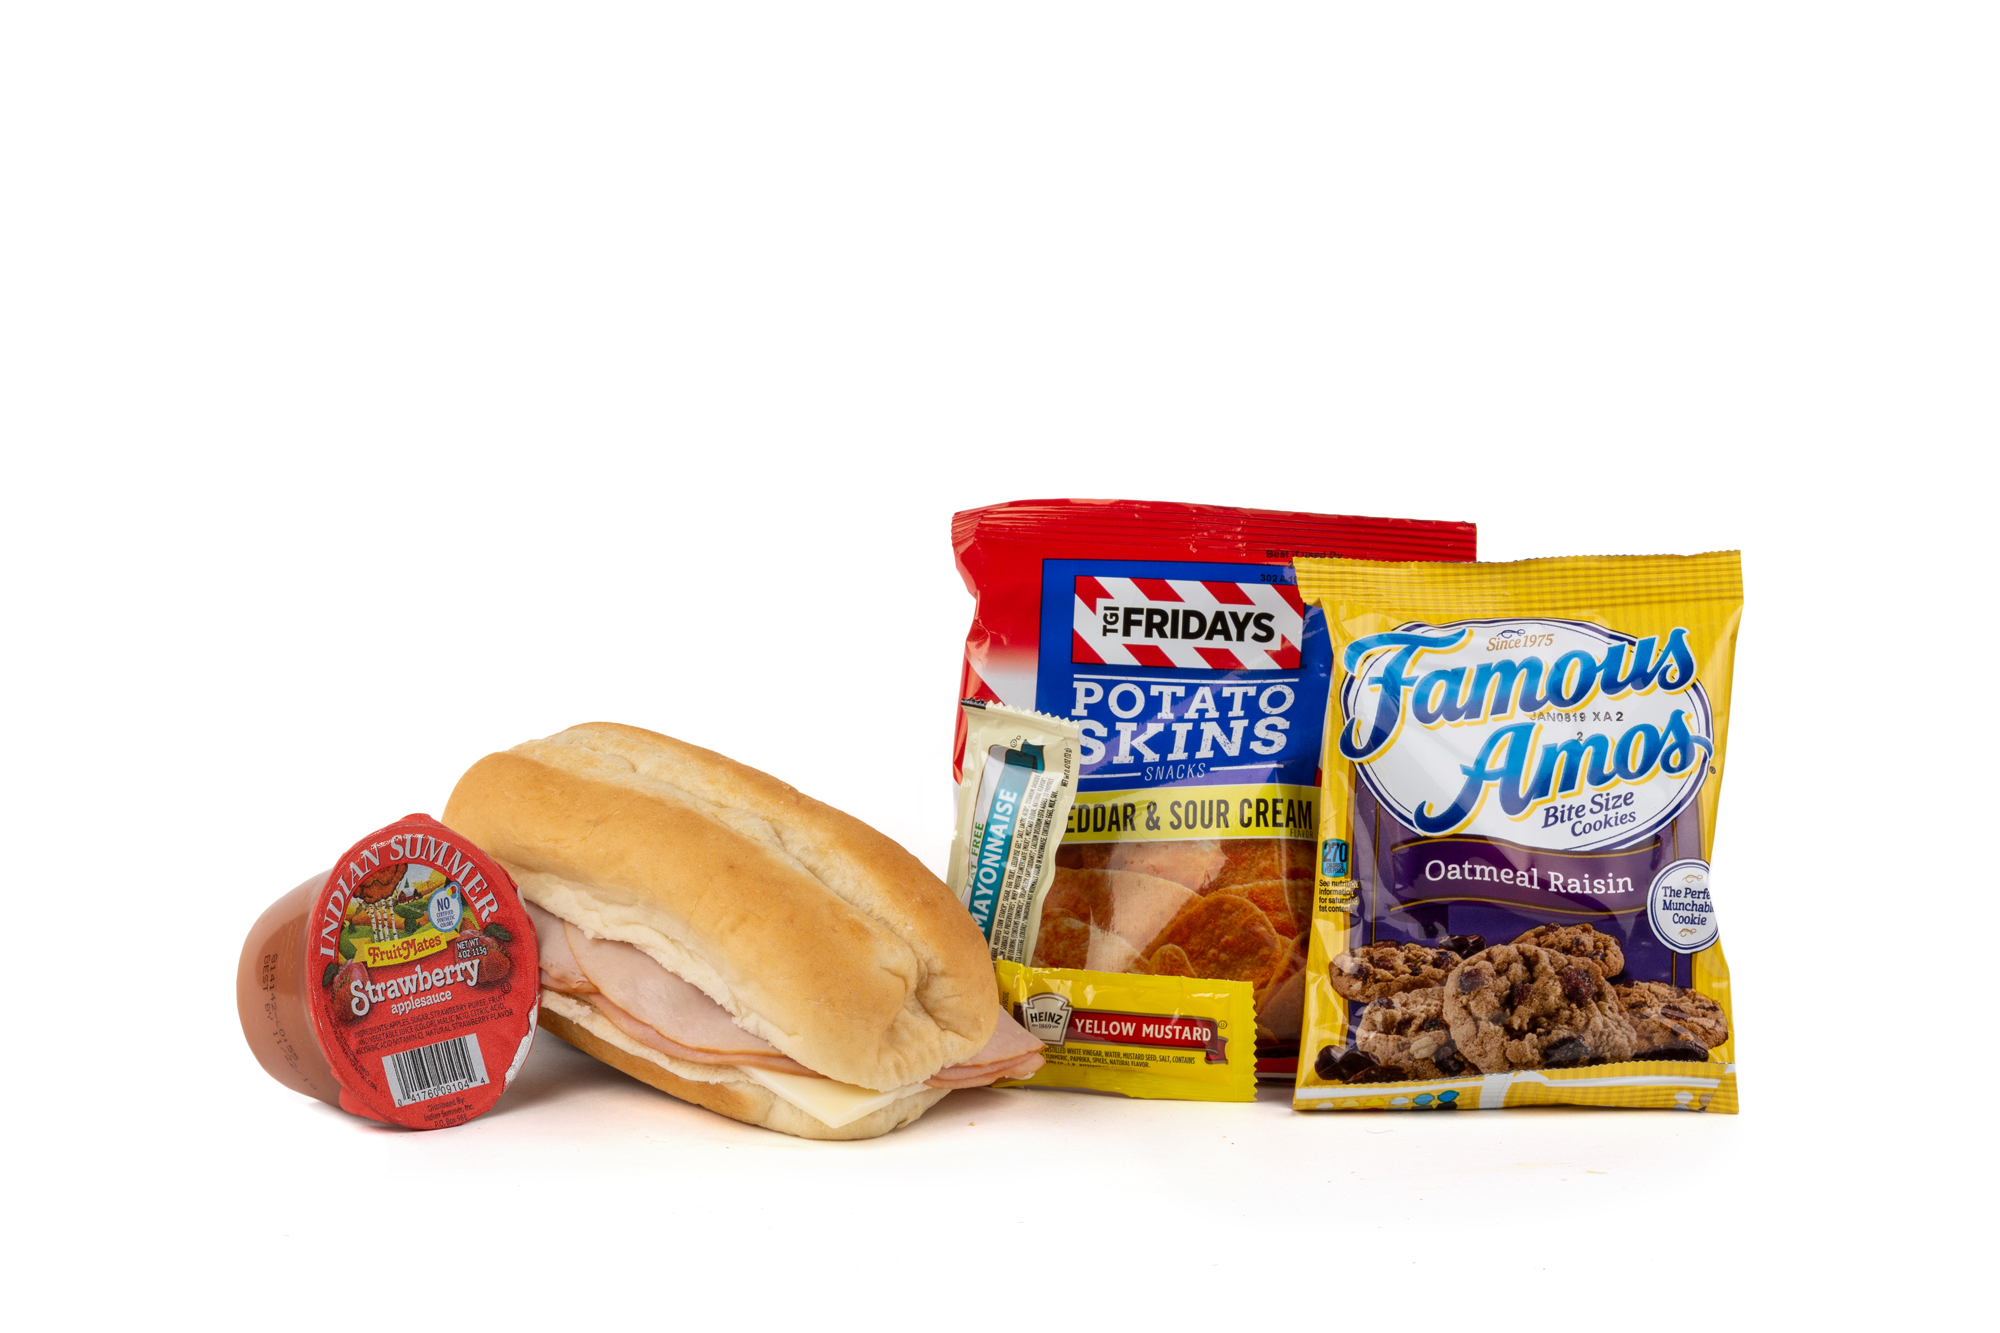 FK04ND - Turk, Ham, Swiss Sandwich - Frozen NO DRINK NAPA 894001E619562  Sandwich - Turkey, Ham, Swiss on Sub Bun Frozen Chip Potato TGIF Cheddar Sour Cream Applesauce Strawberry Cookie Oatmeal Raisin Famous Amos Mayonnaise Packet Fatfree Dressing Mustard Packet Candy Mint Starlight Spearmint